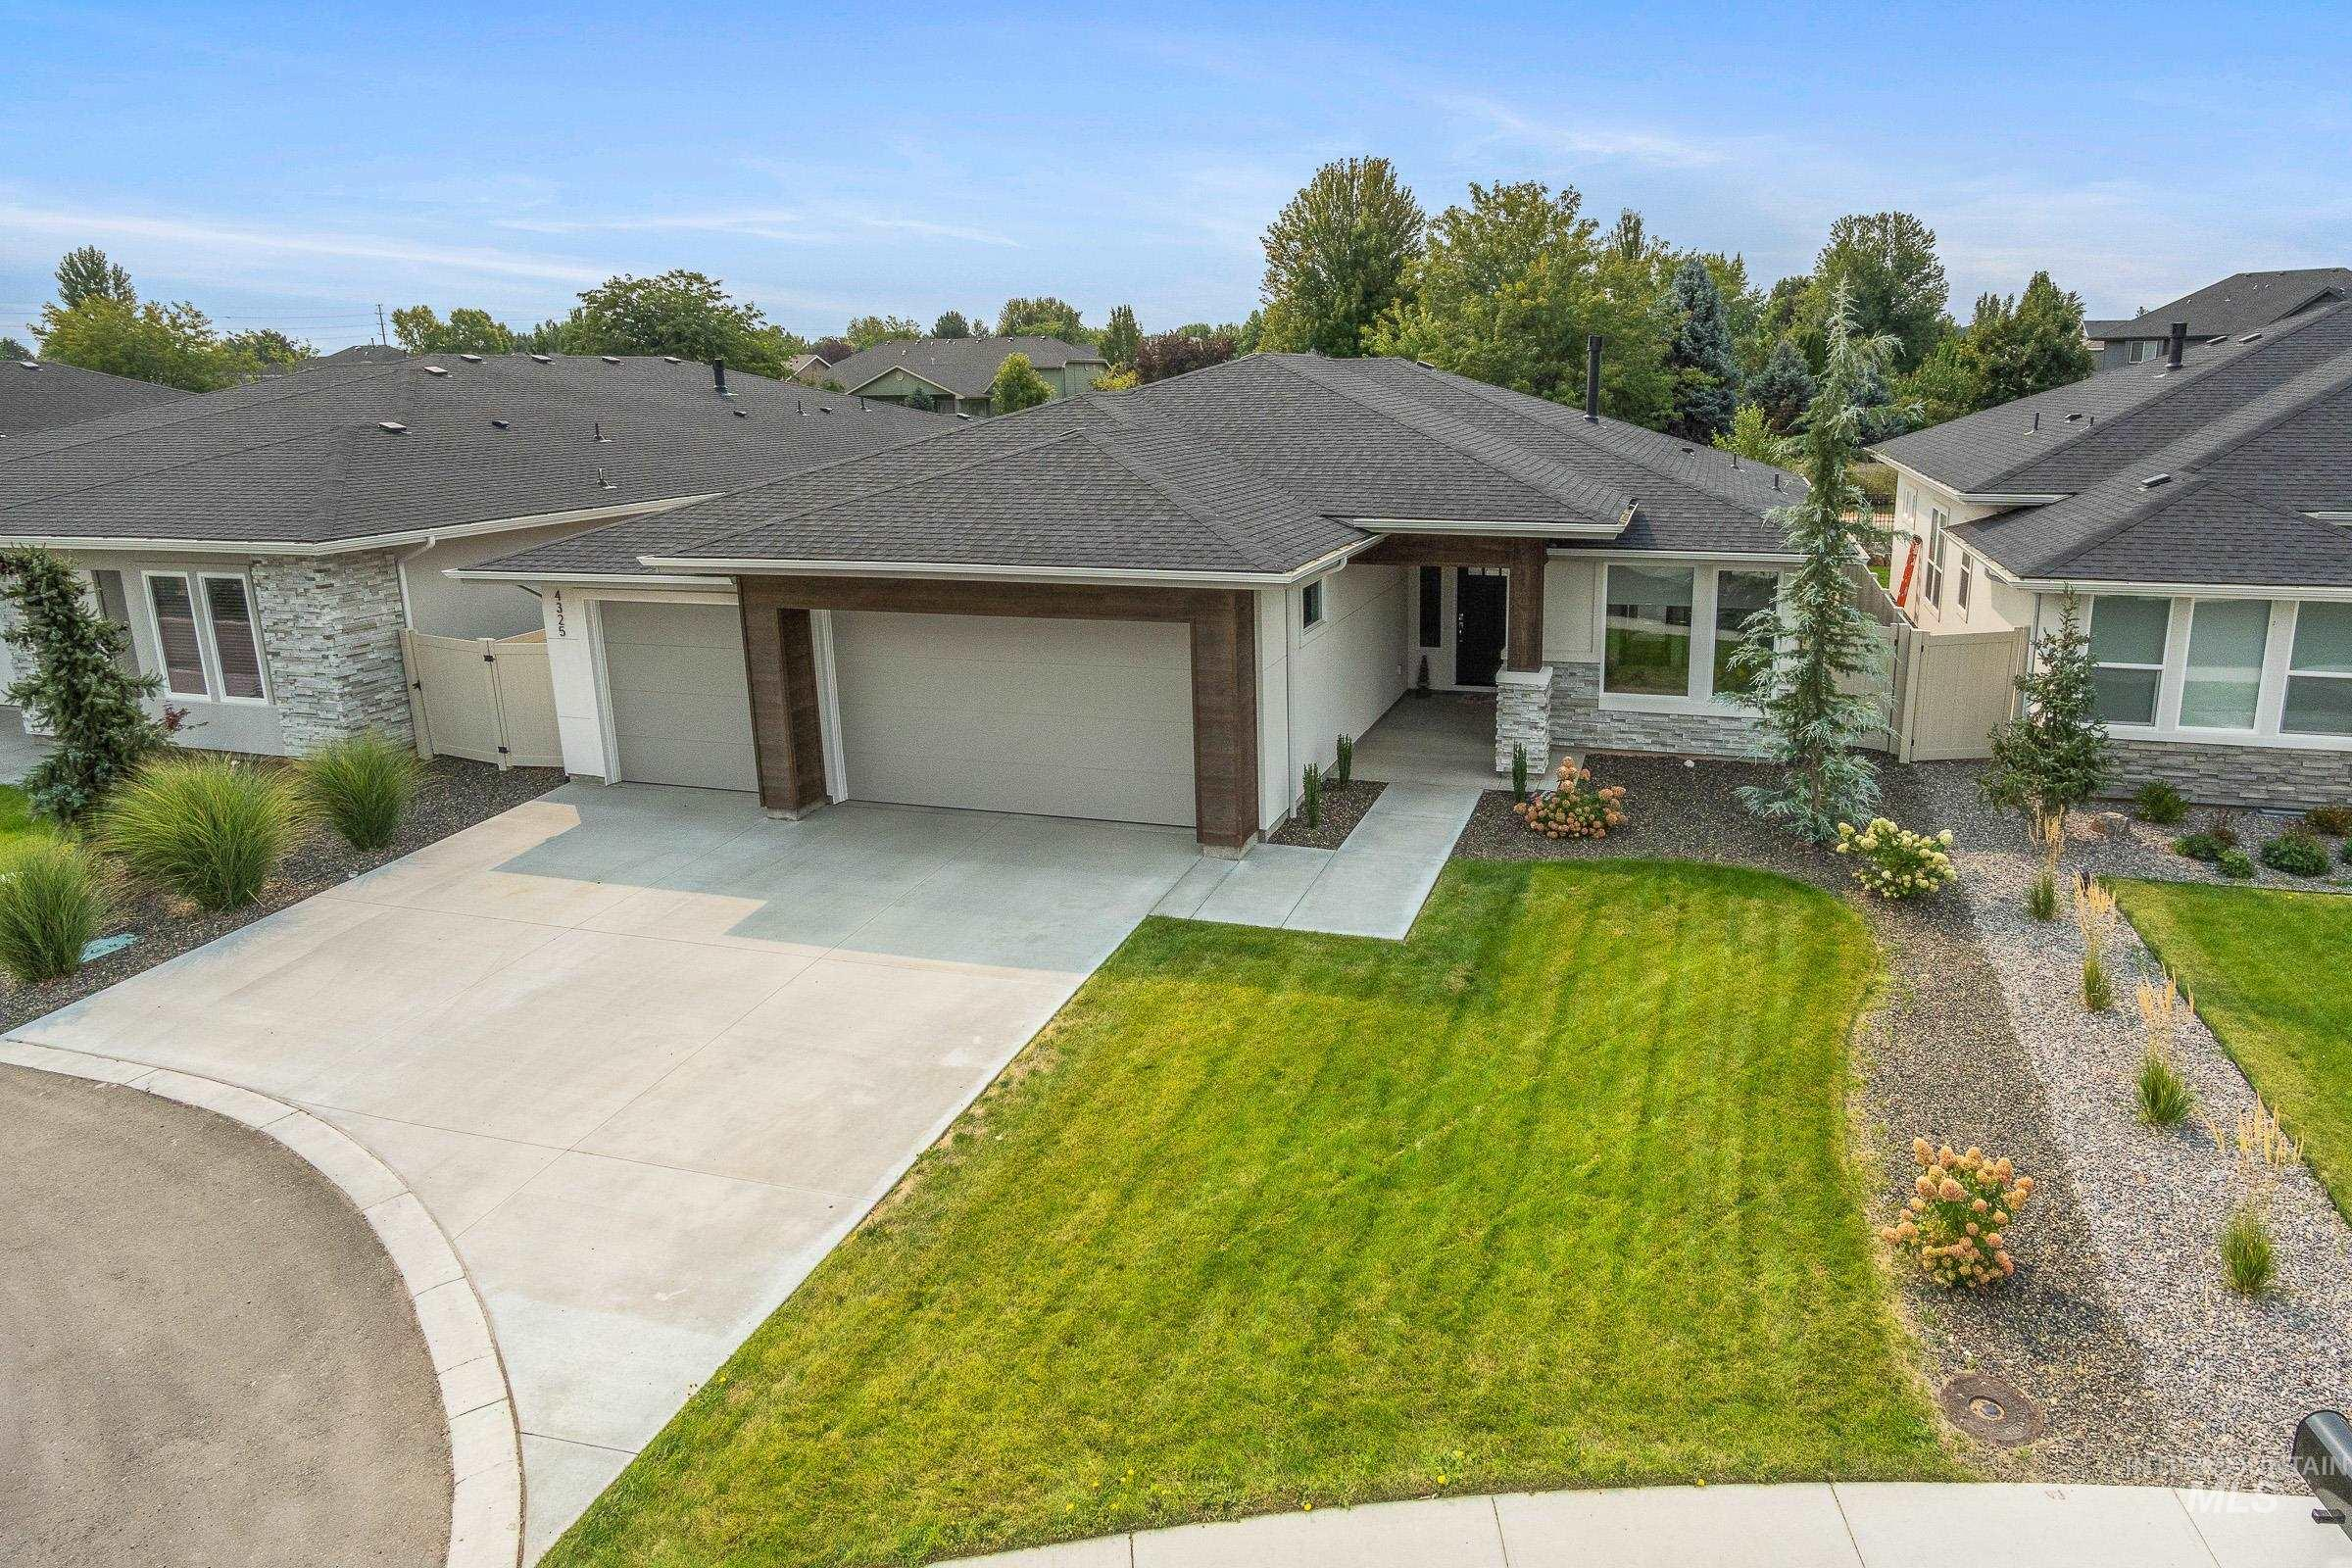 Stunning modern design in the highly sought after Movado estates Subdivision. 10 foot ceilings throughout, floor to ceiling fireplace, large quartz island and butler's pantry, spa-like master bath with huge soaker tub and separate walk in shower. Enjoy privacy on the large covered backyard patio which boarders the canal and has no direct back neighbors. Community pool. Includes custom window treatments, washer ,dryer, refrigerator, TV and wall mount in the great room, water softener and whole house water filtration system with extra filtered water at the kitchen sink, and a radon mitigation and fan installed earlier this year. - Renee Tiner, Main: 208-995-1981, Windermere Real Estate Professionals, Main: 208-343-5412,